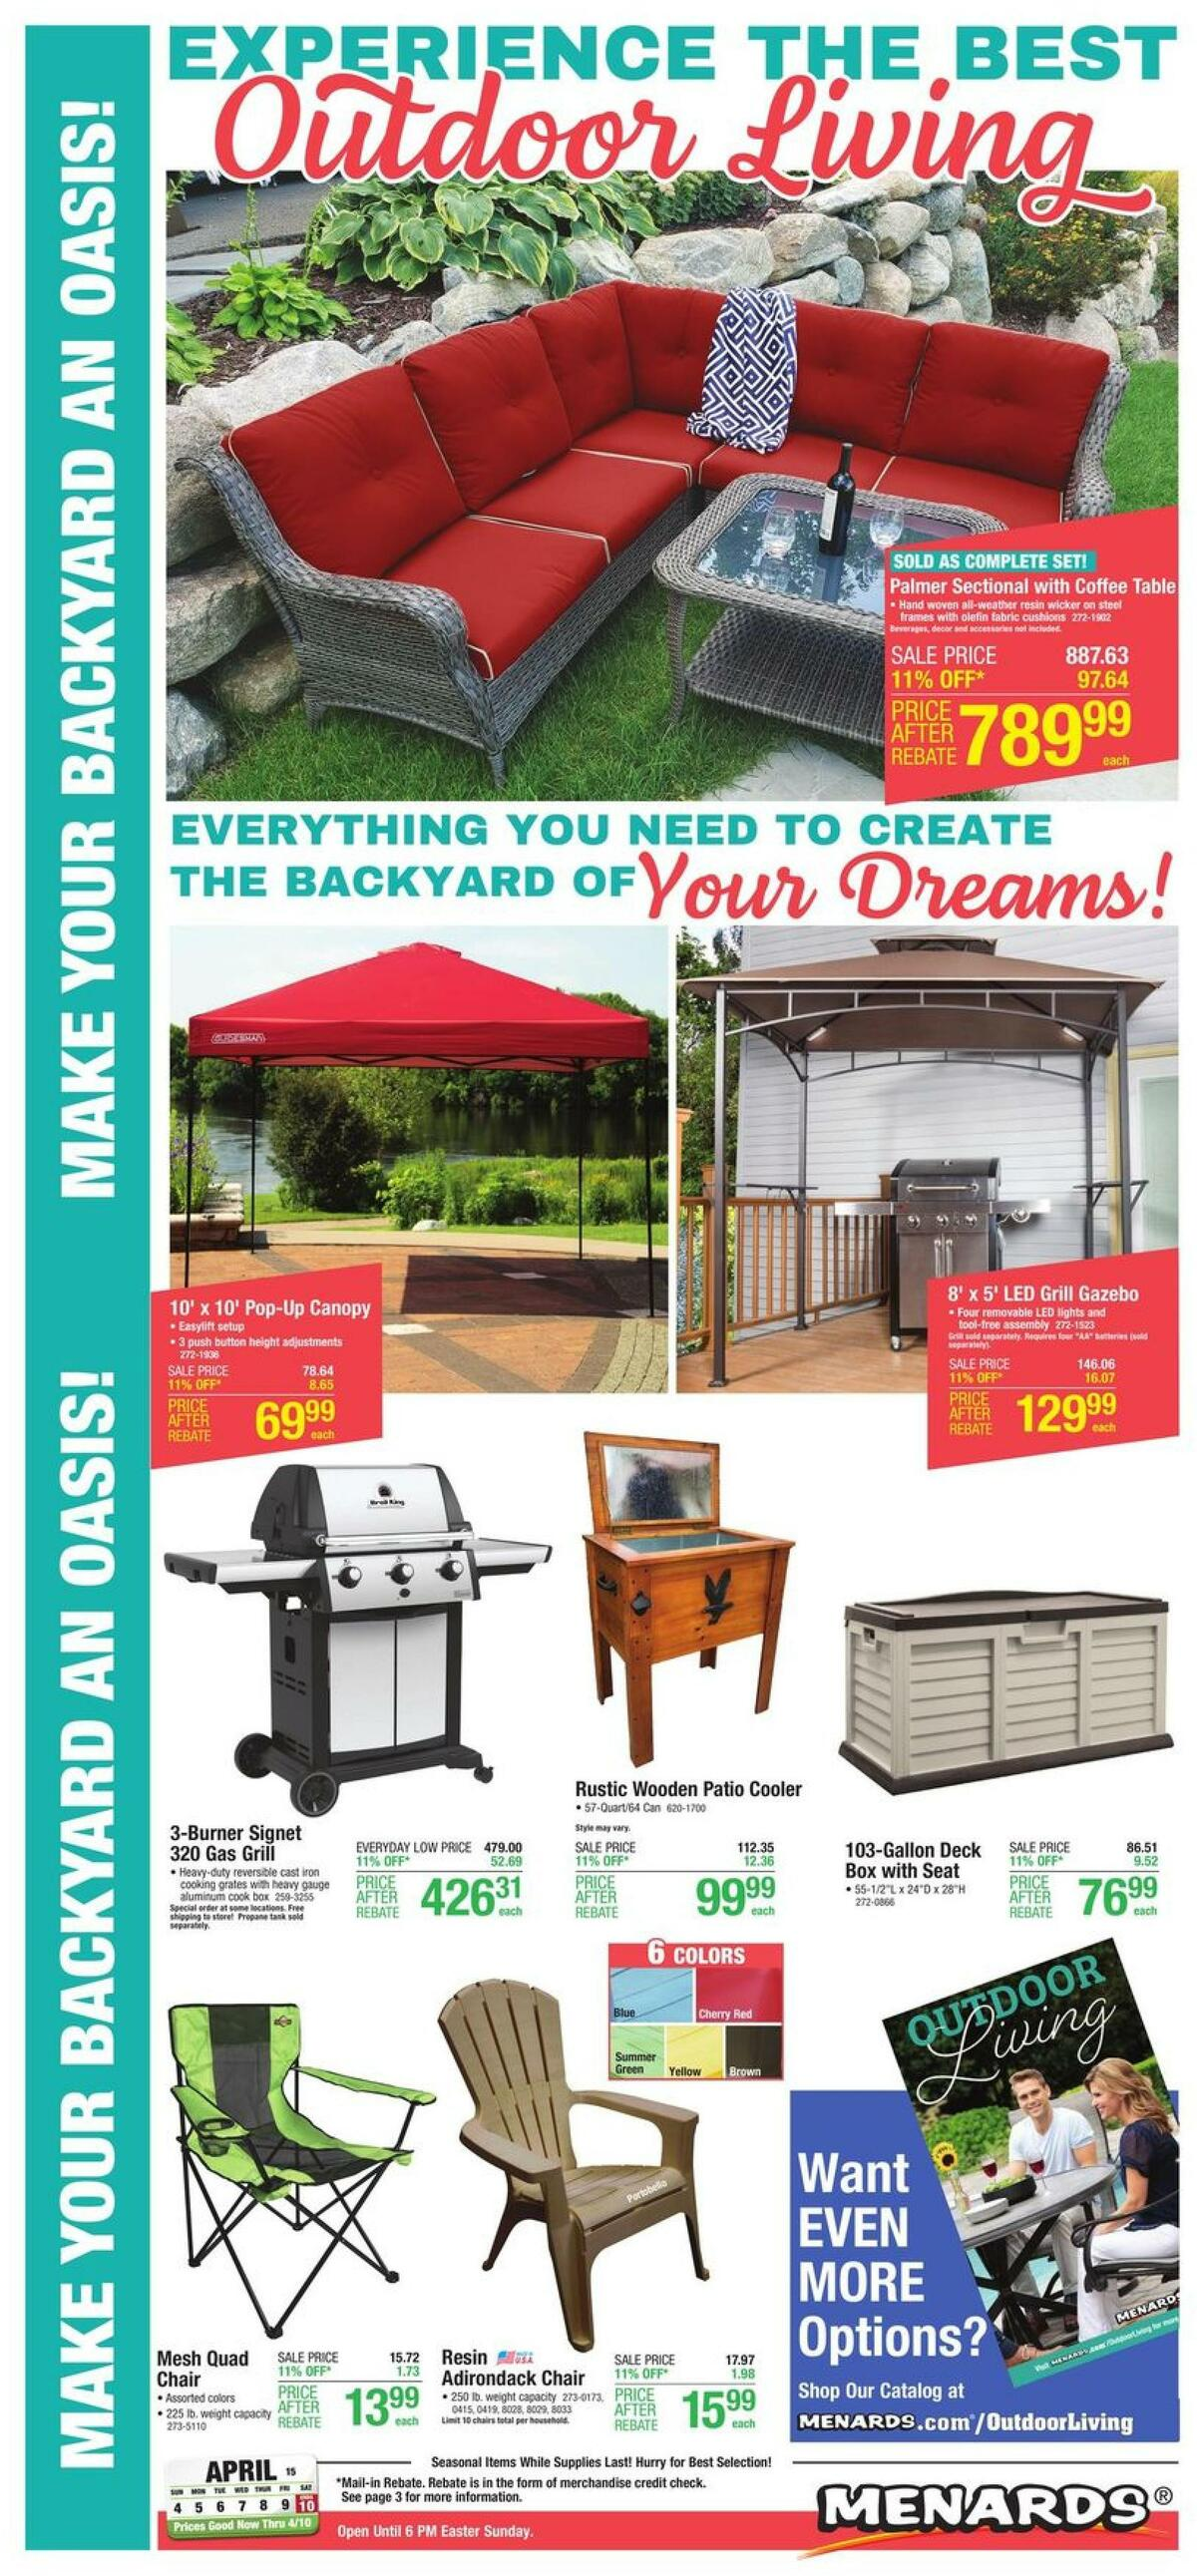 Menards Outdoor Living Weekly Ad from March 31